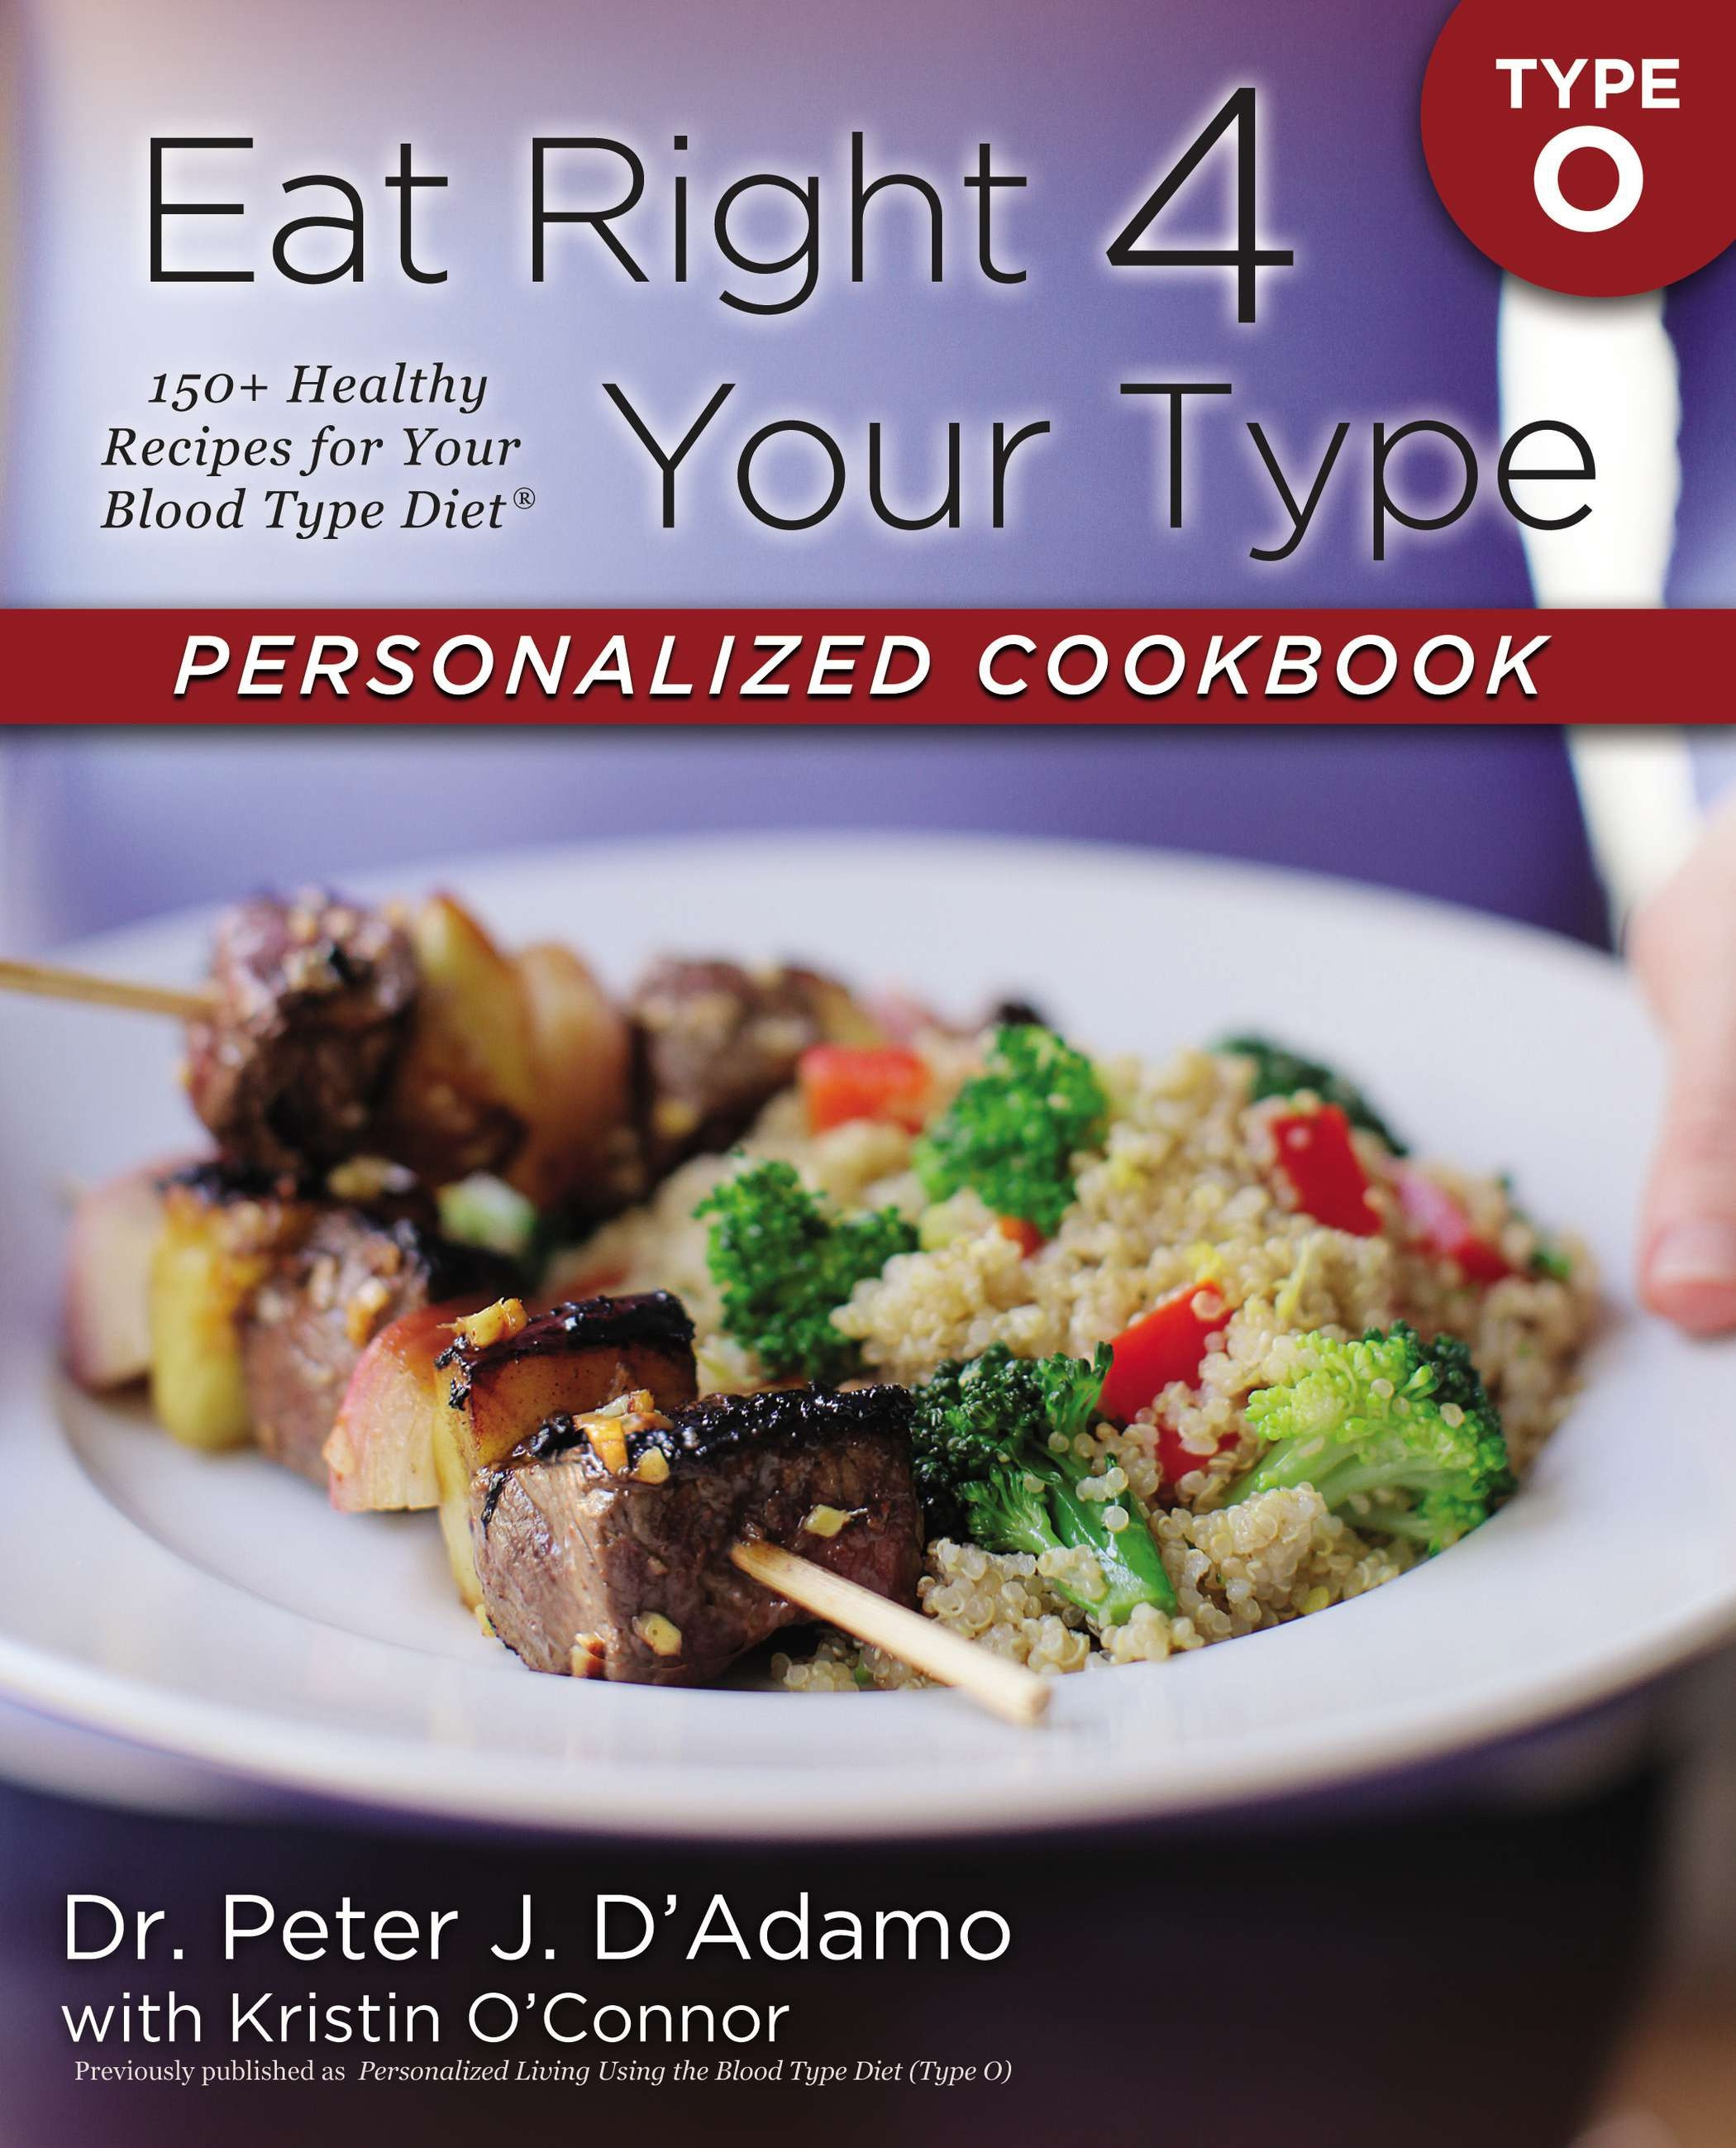 Eat Right 4 Your Type Personalized Cookbook Type O: 150